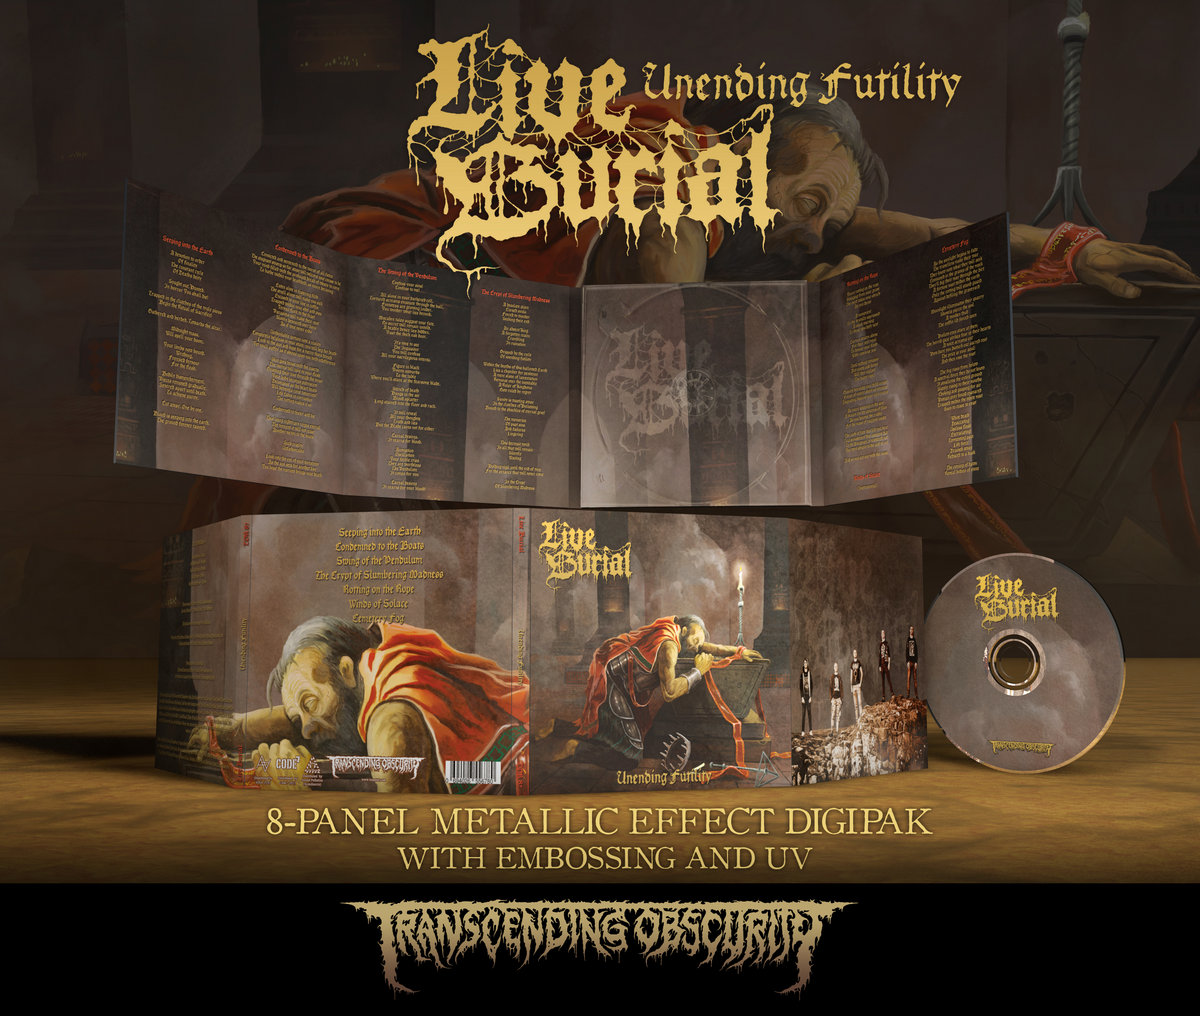 LIVE BURIAL - Unending Futility 8-Panel Metallic Effect Digipak CD with UV Lamination and Embossing